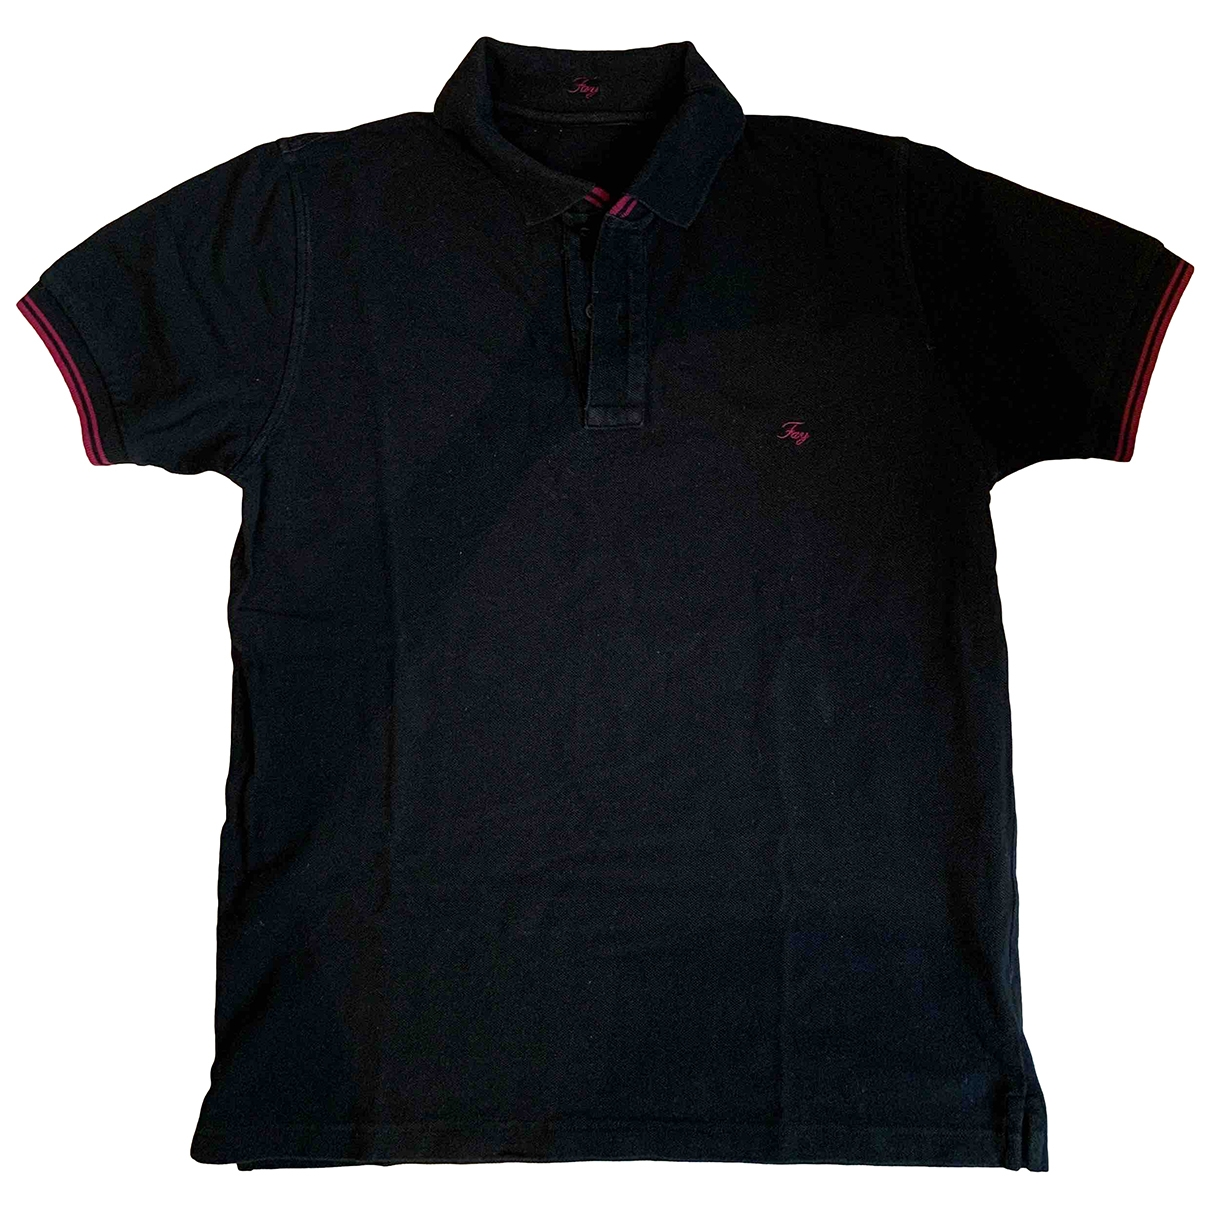 Fay \N Black Cotton Polo shirts for Men L International